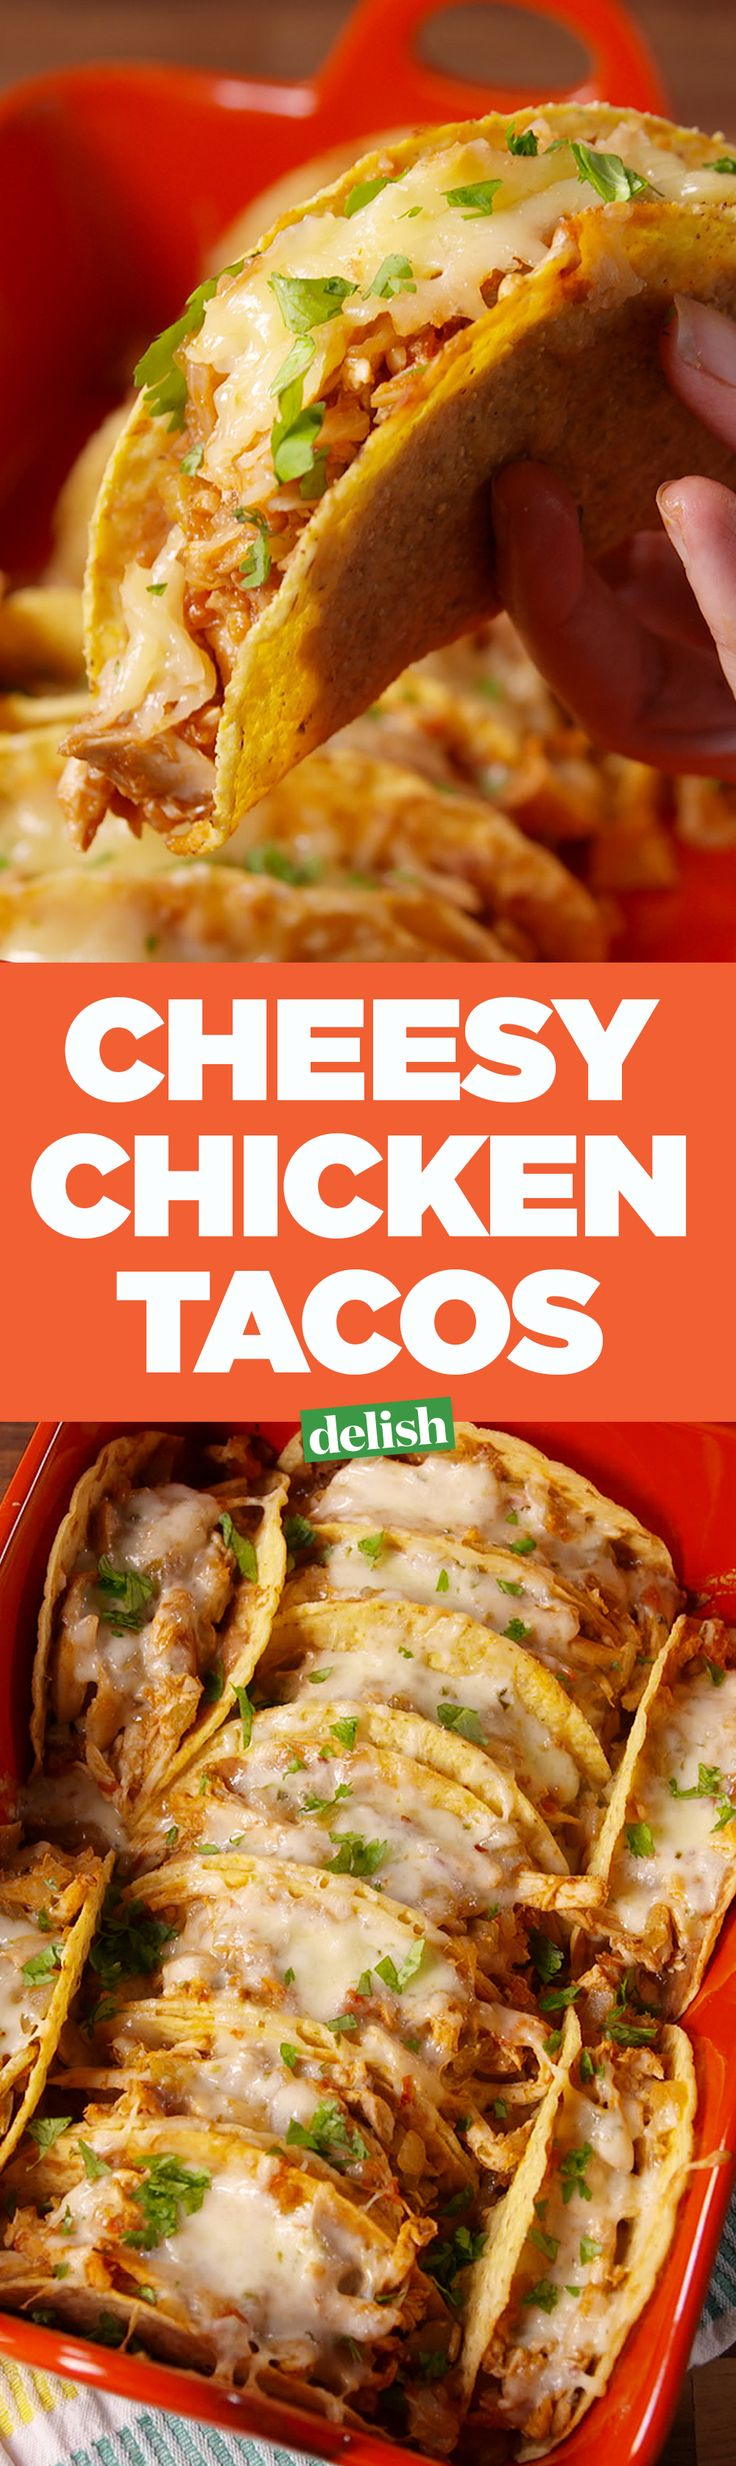 Cheesy Chicken Tacos = easiest way to serve a hungry crowd in minutes. Get the recipe on Delish.com.